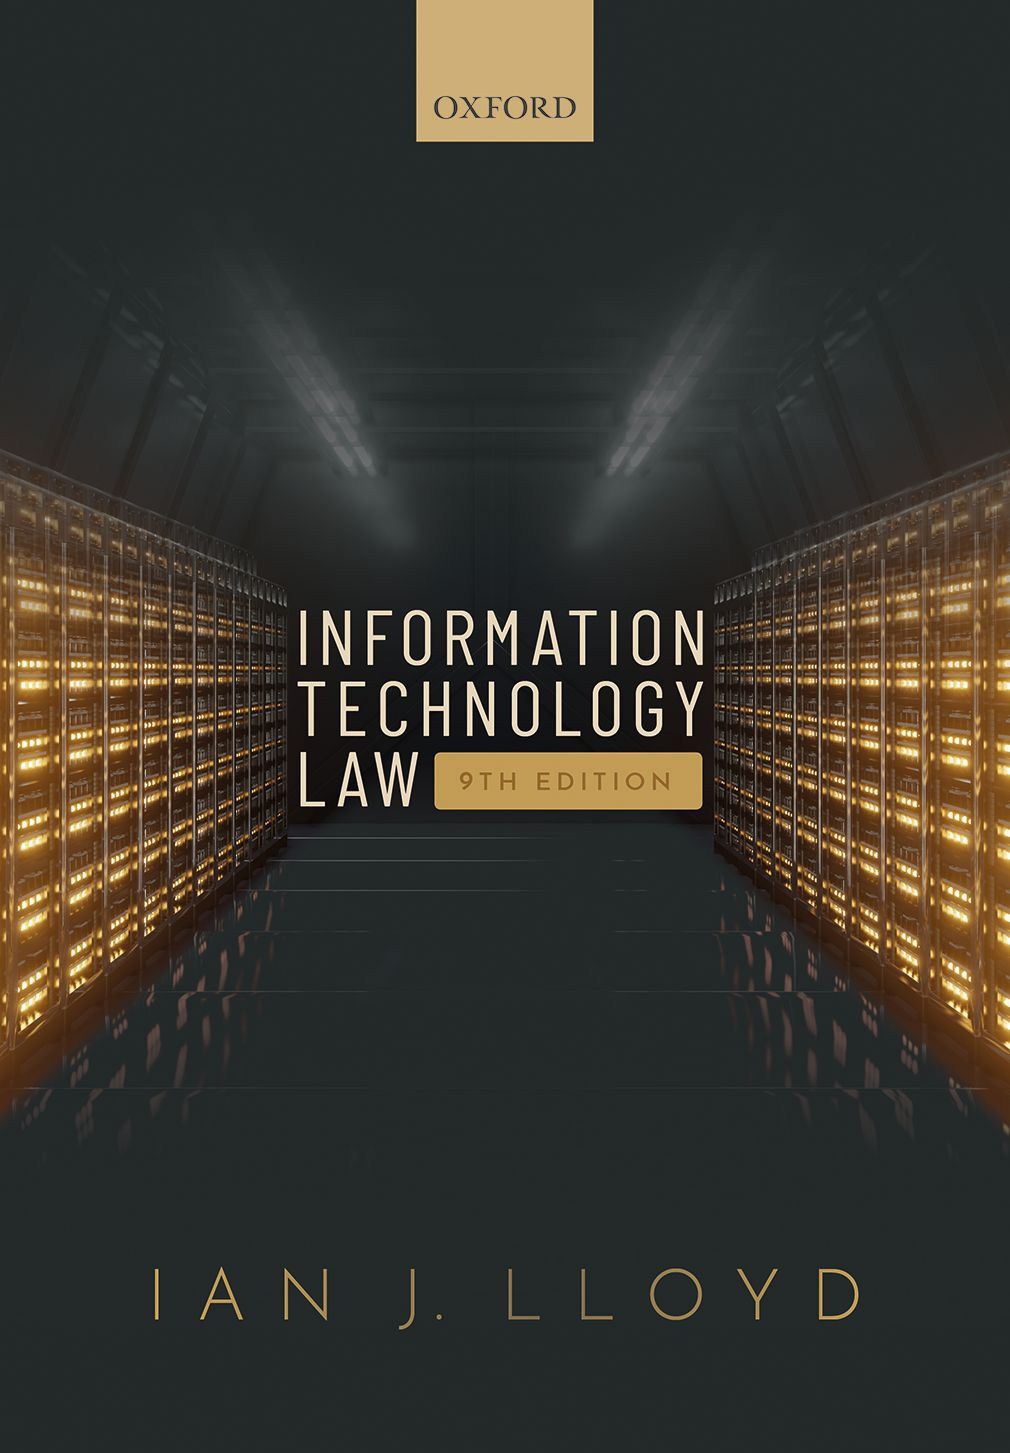 Information Technology Law 9e Resources